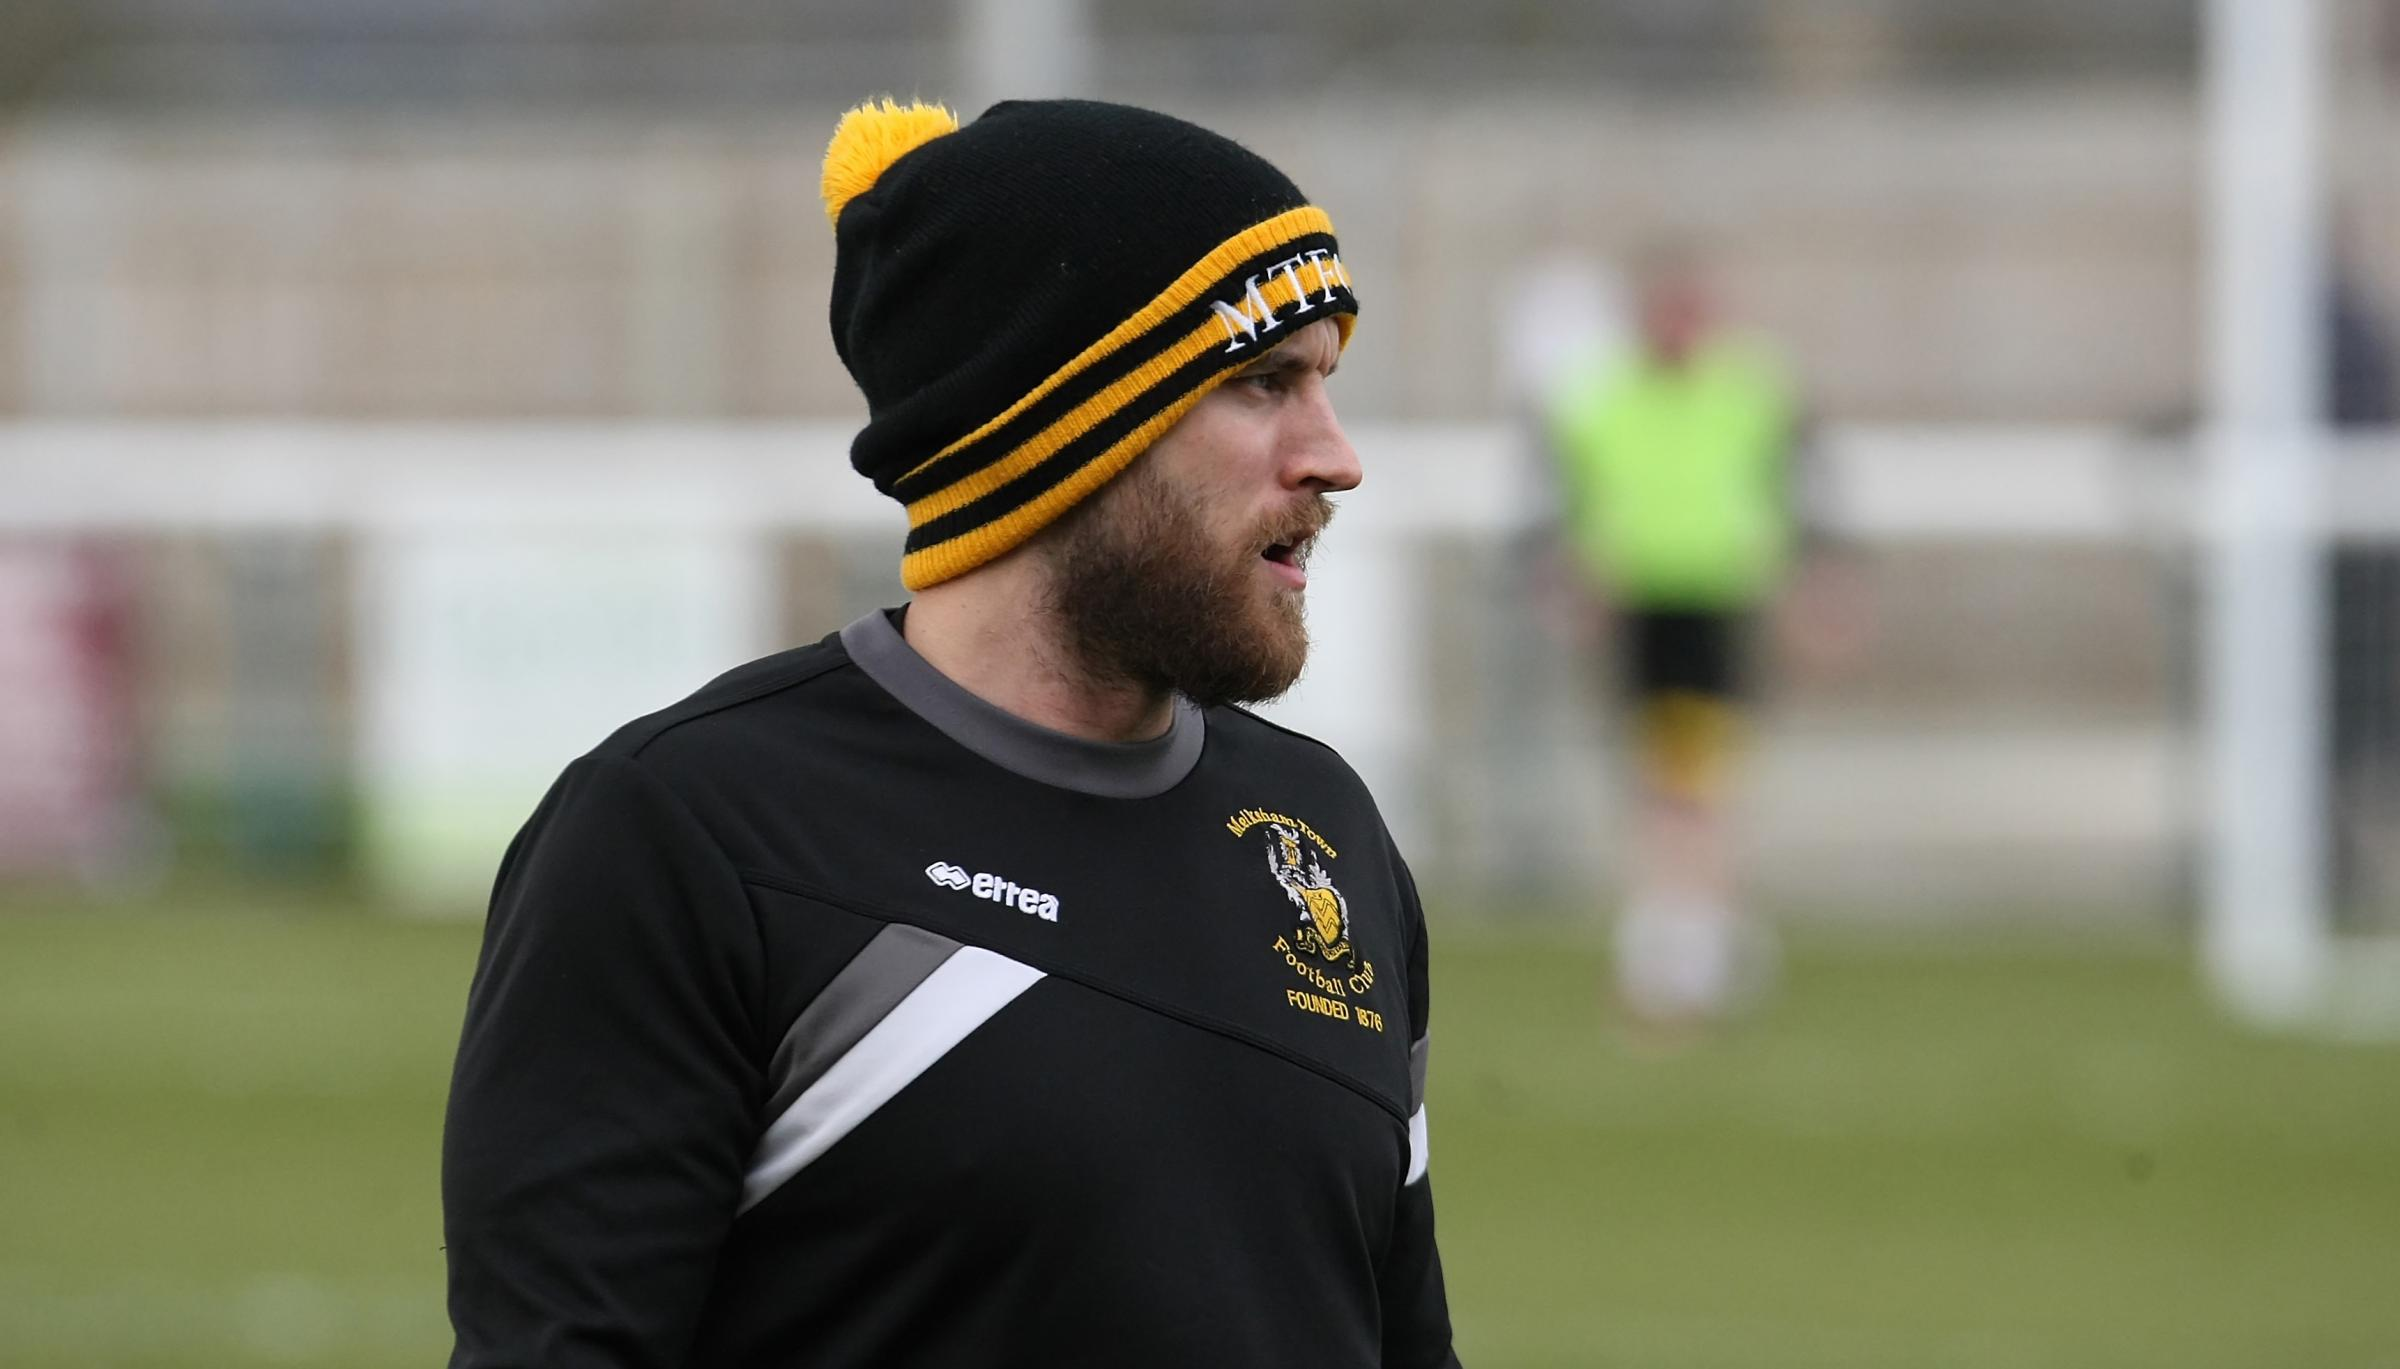 Melksham Town v Thatcham Town; Saturday, March 2, 2019; PICTURE: ROBIN FOSTER - Kieran Baggs